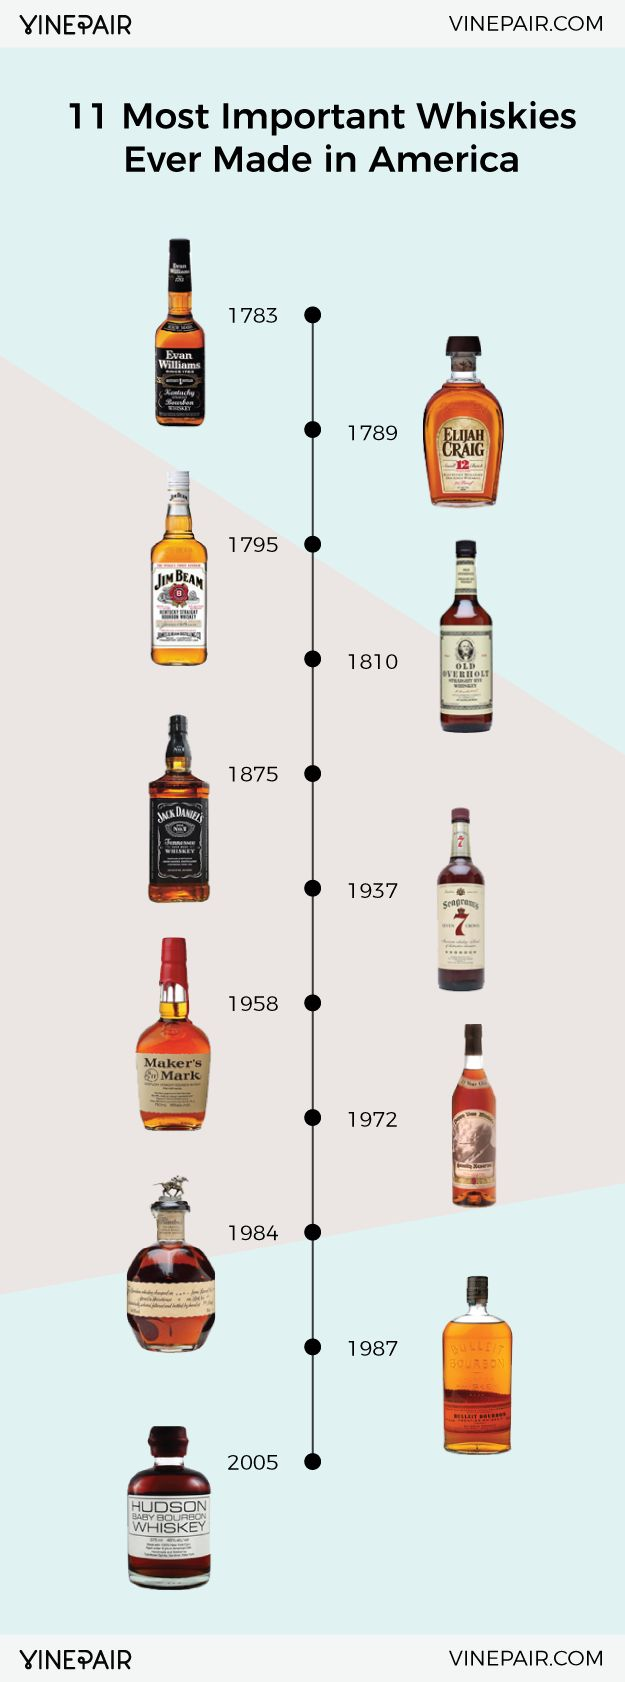 Learn about 11 of the most important American Whiskey brands. America may be young, but its history with whiskey is serious. See 11 essential whiskies now!